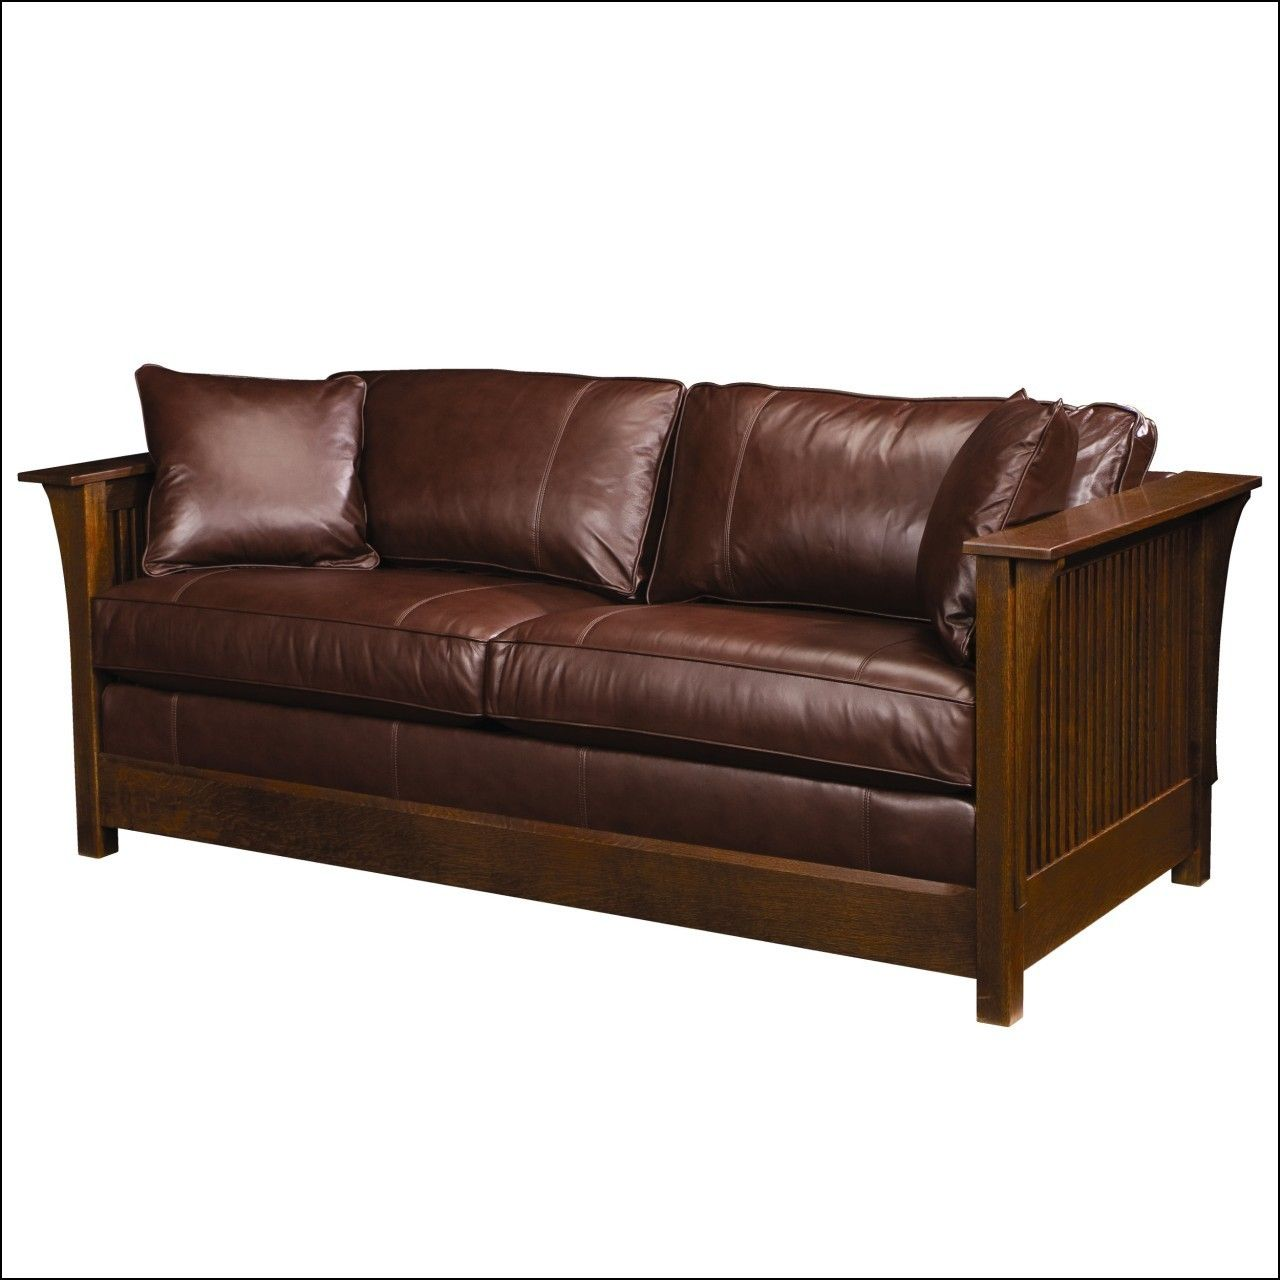 Leather Sofa Sleepers Queen Size Colorado Leather Sleeper